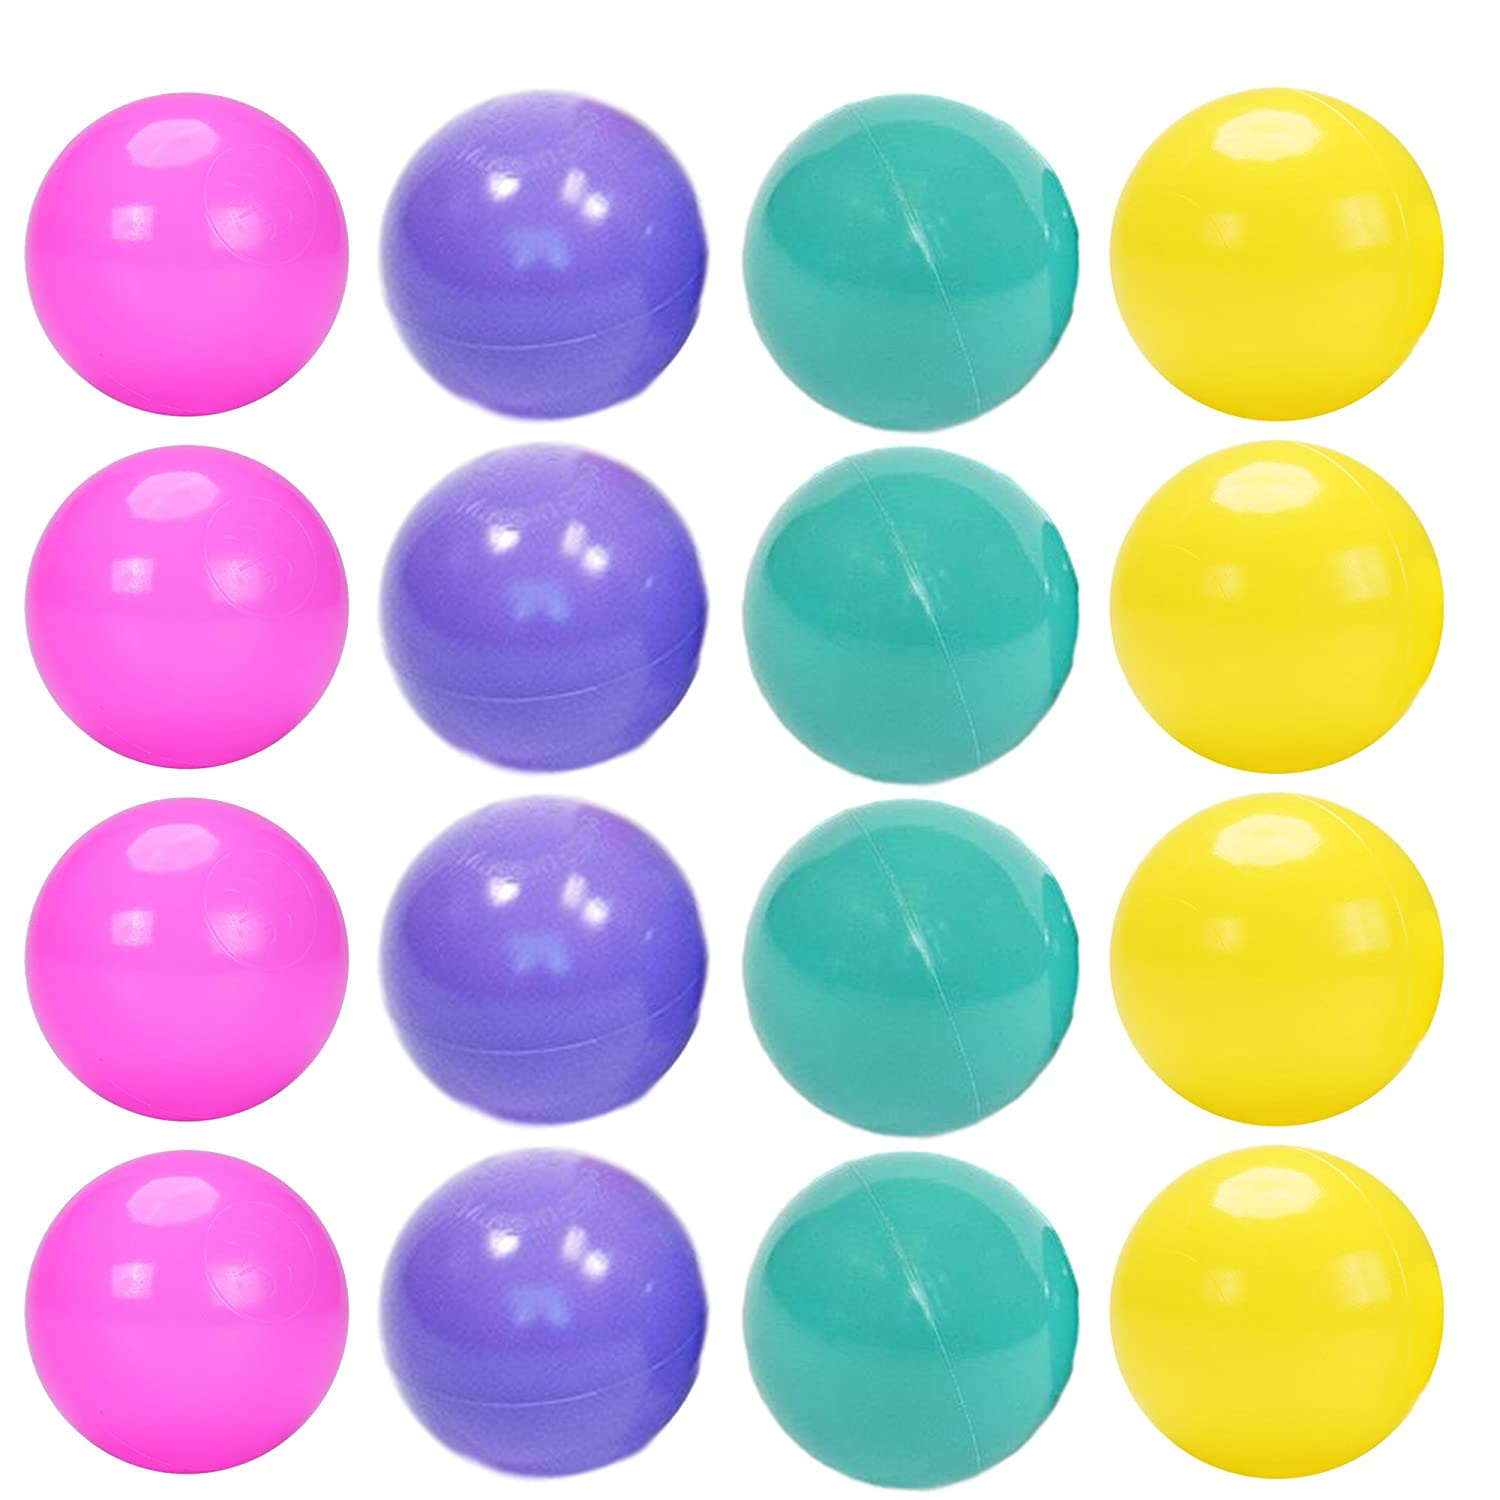 Playz Princess Edition Soft Plastic 200 Play Balls - Crush Proof, No Sharp Edges, Non Toxic, Phthalate & BPA Free - Use in Baby or Toddler Ball Pit, Play Tents & Tunnels for Indoor & Outdoor